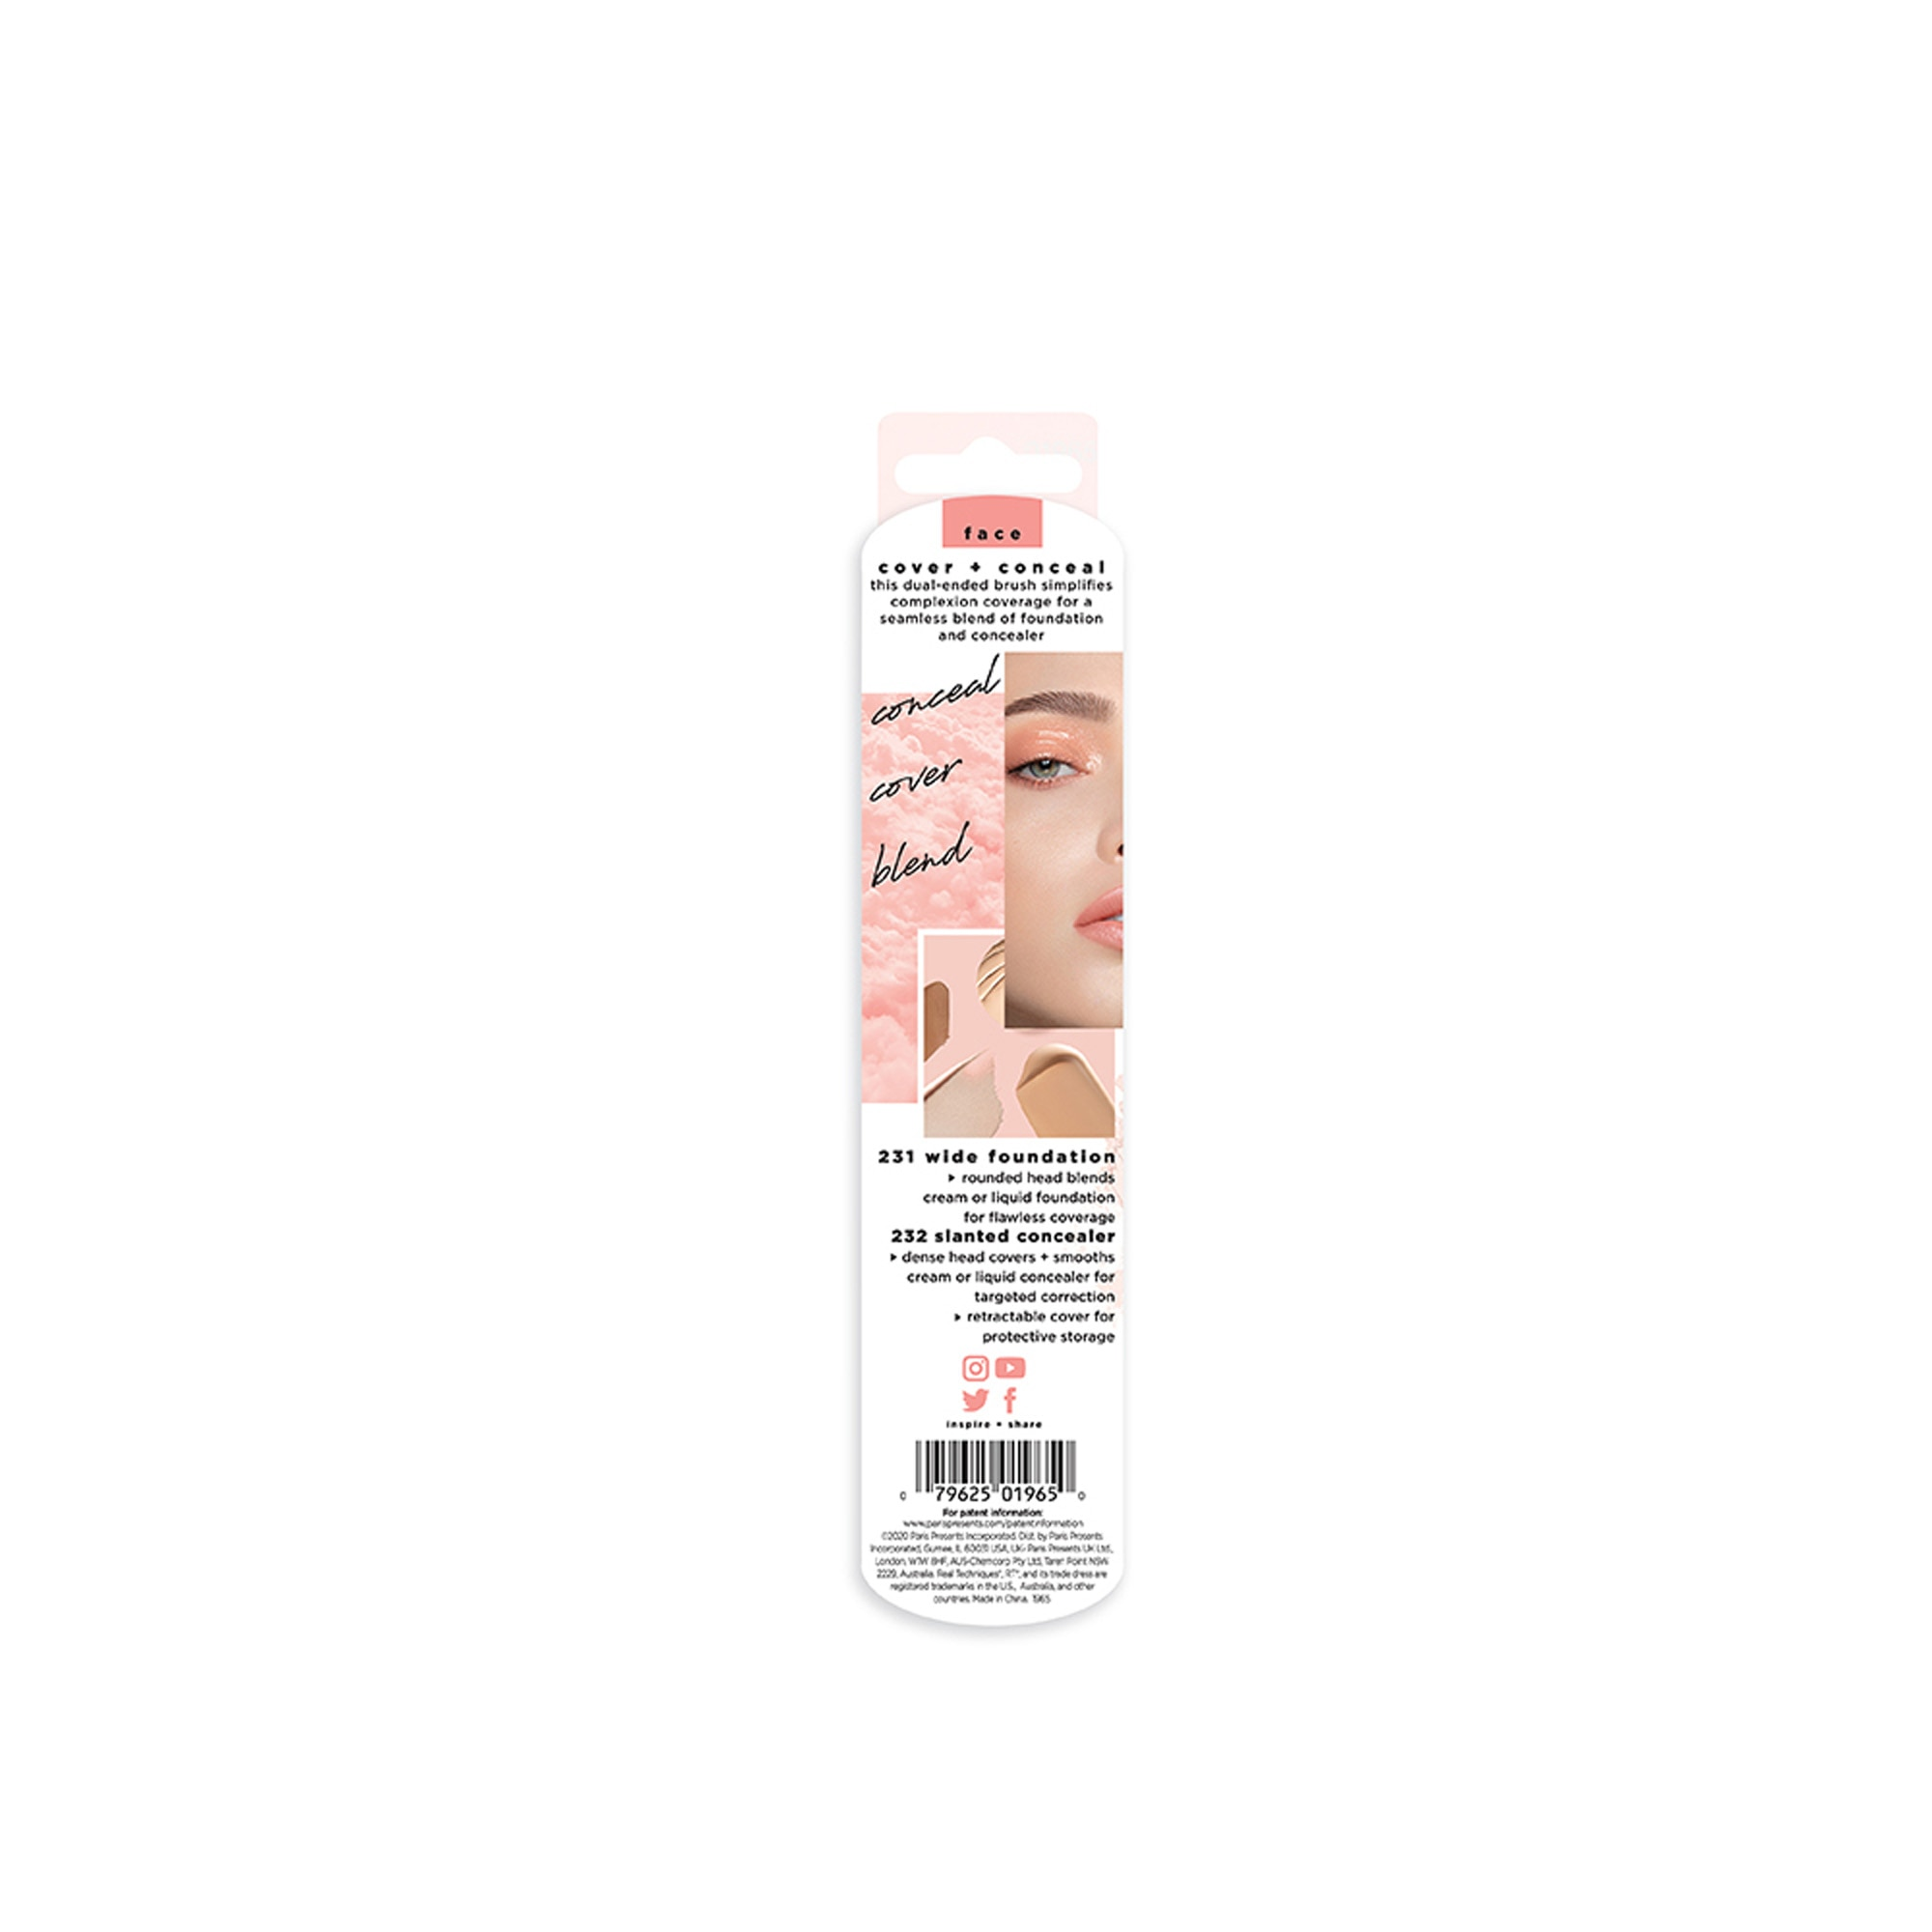 REAL TECHNIQUESDual Ended Brush Cover and Conceal,Brush-